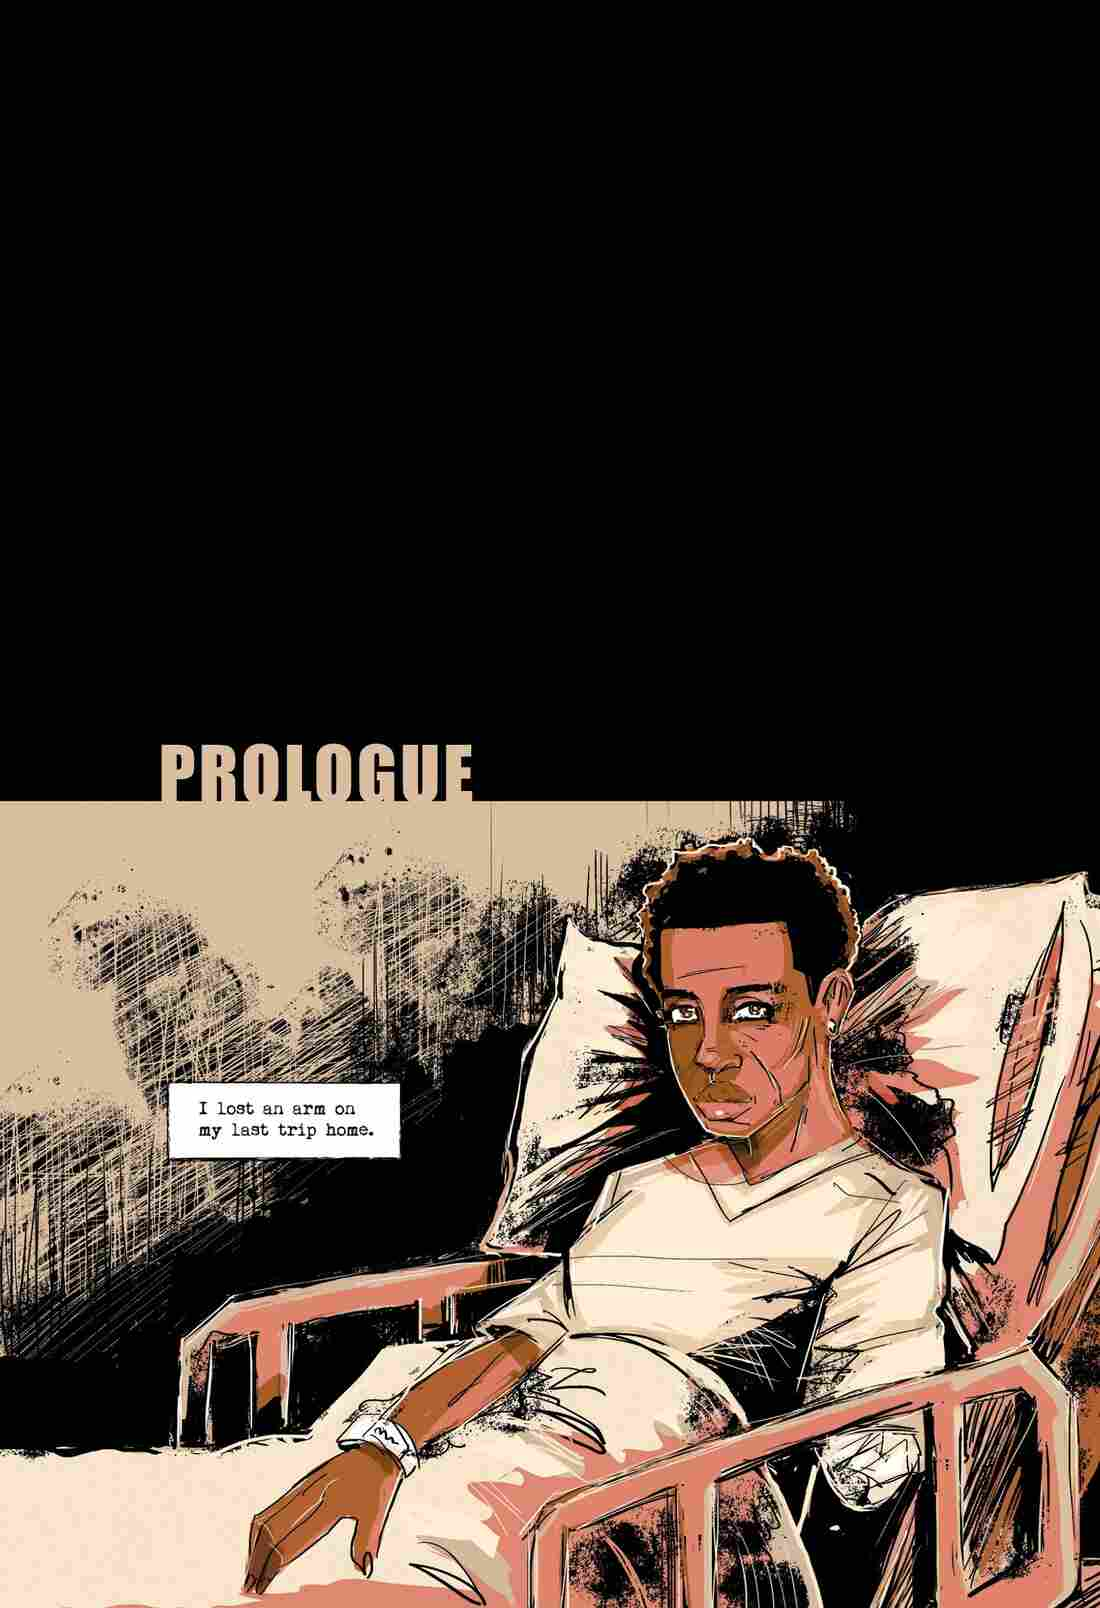 The prologue, which begins with Dana in a hospital bed missing part of her arm.